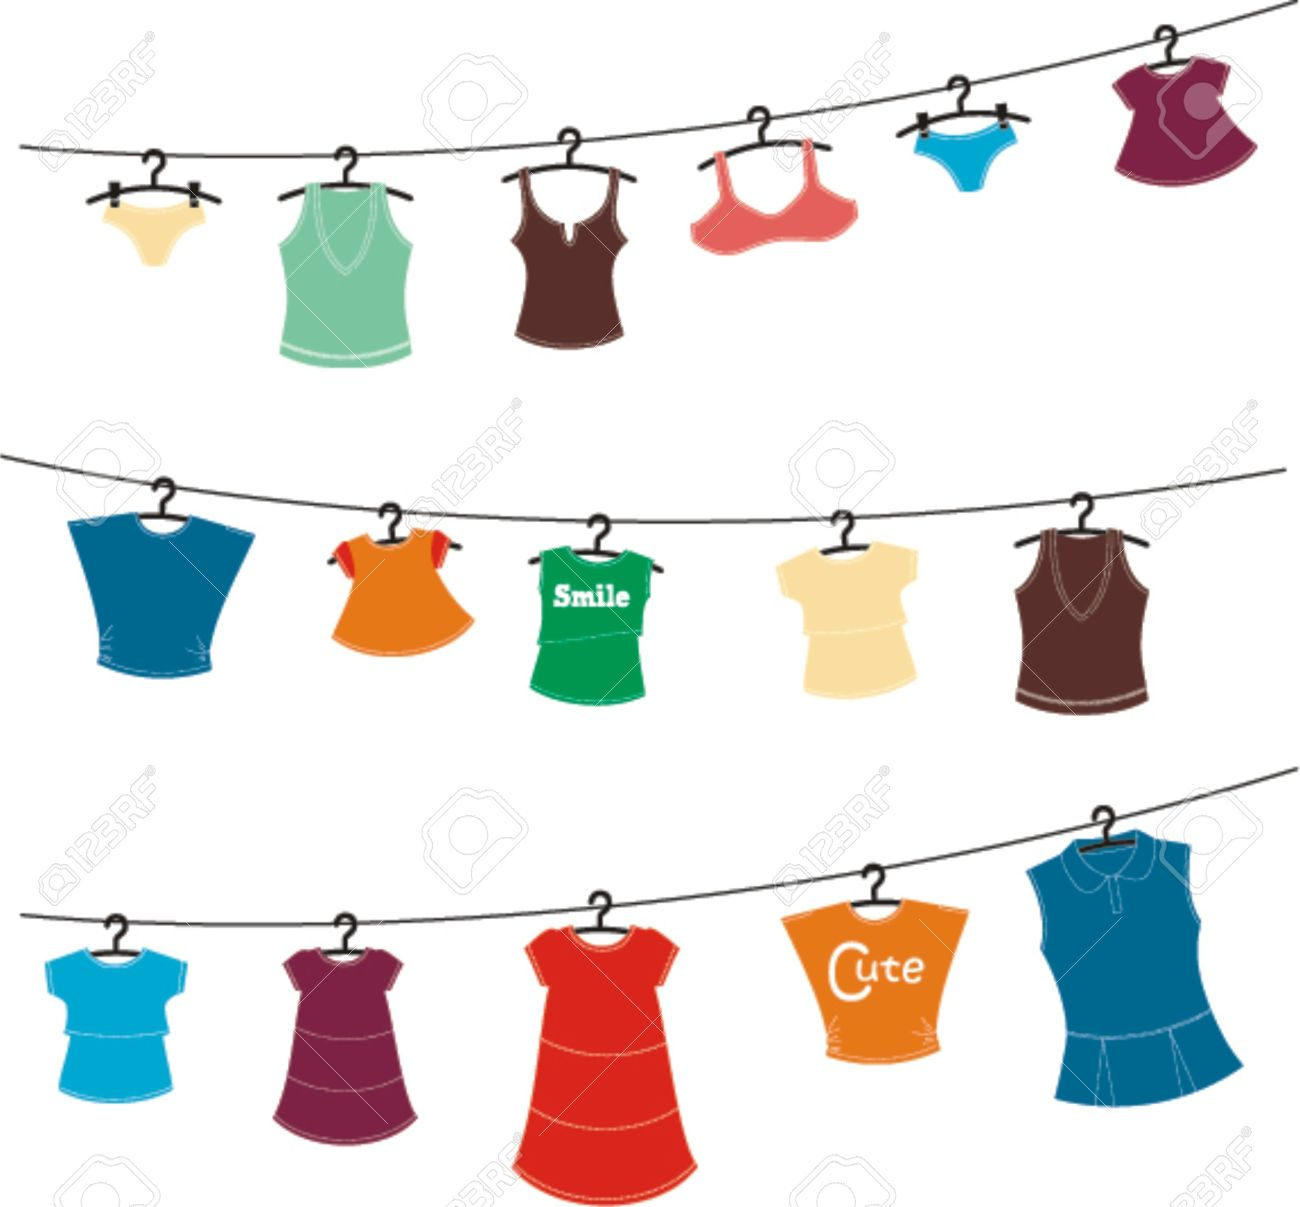 Similiar Laundry Clothes Line Clip Art Keywords.